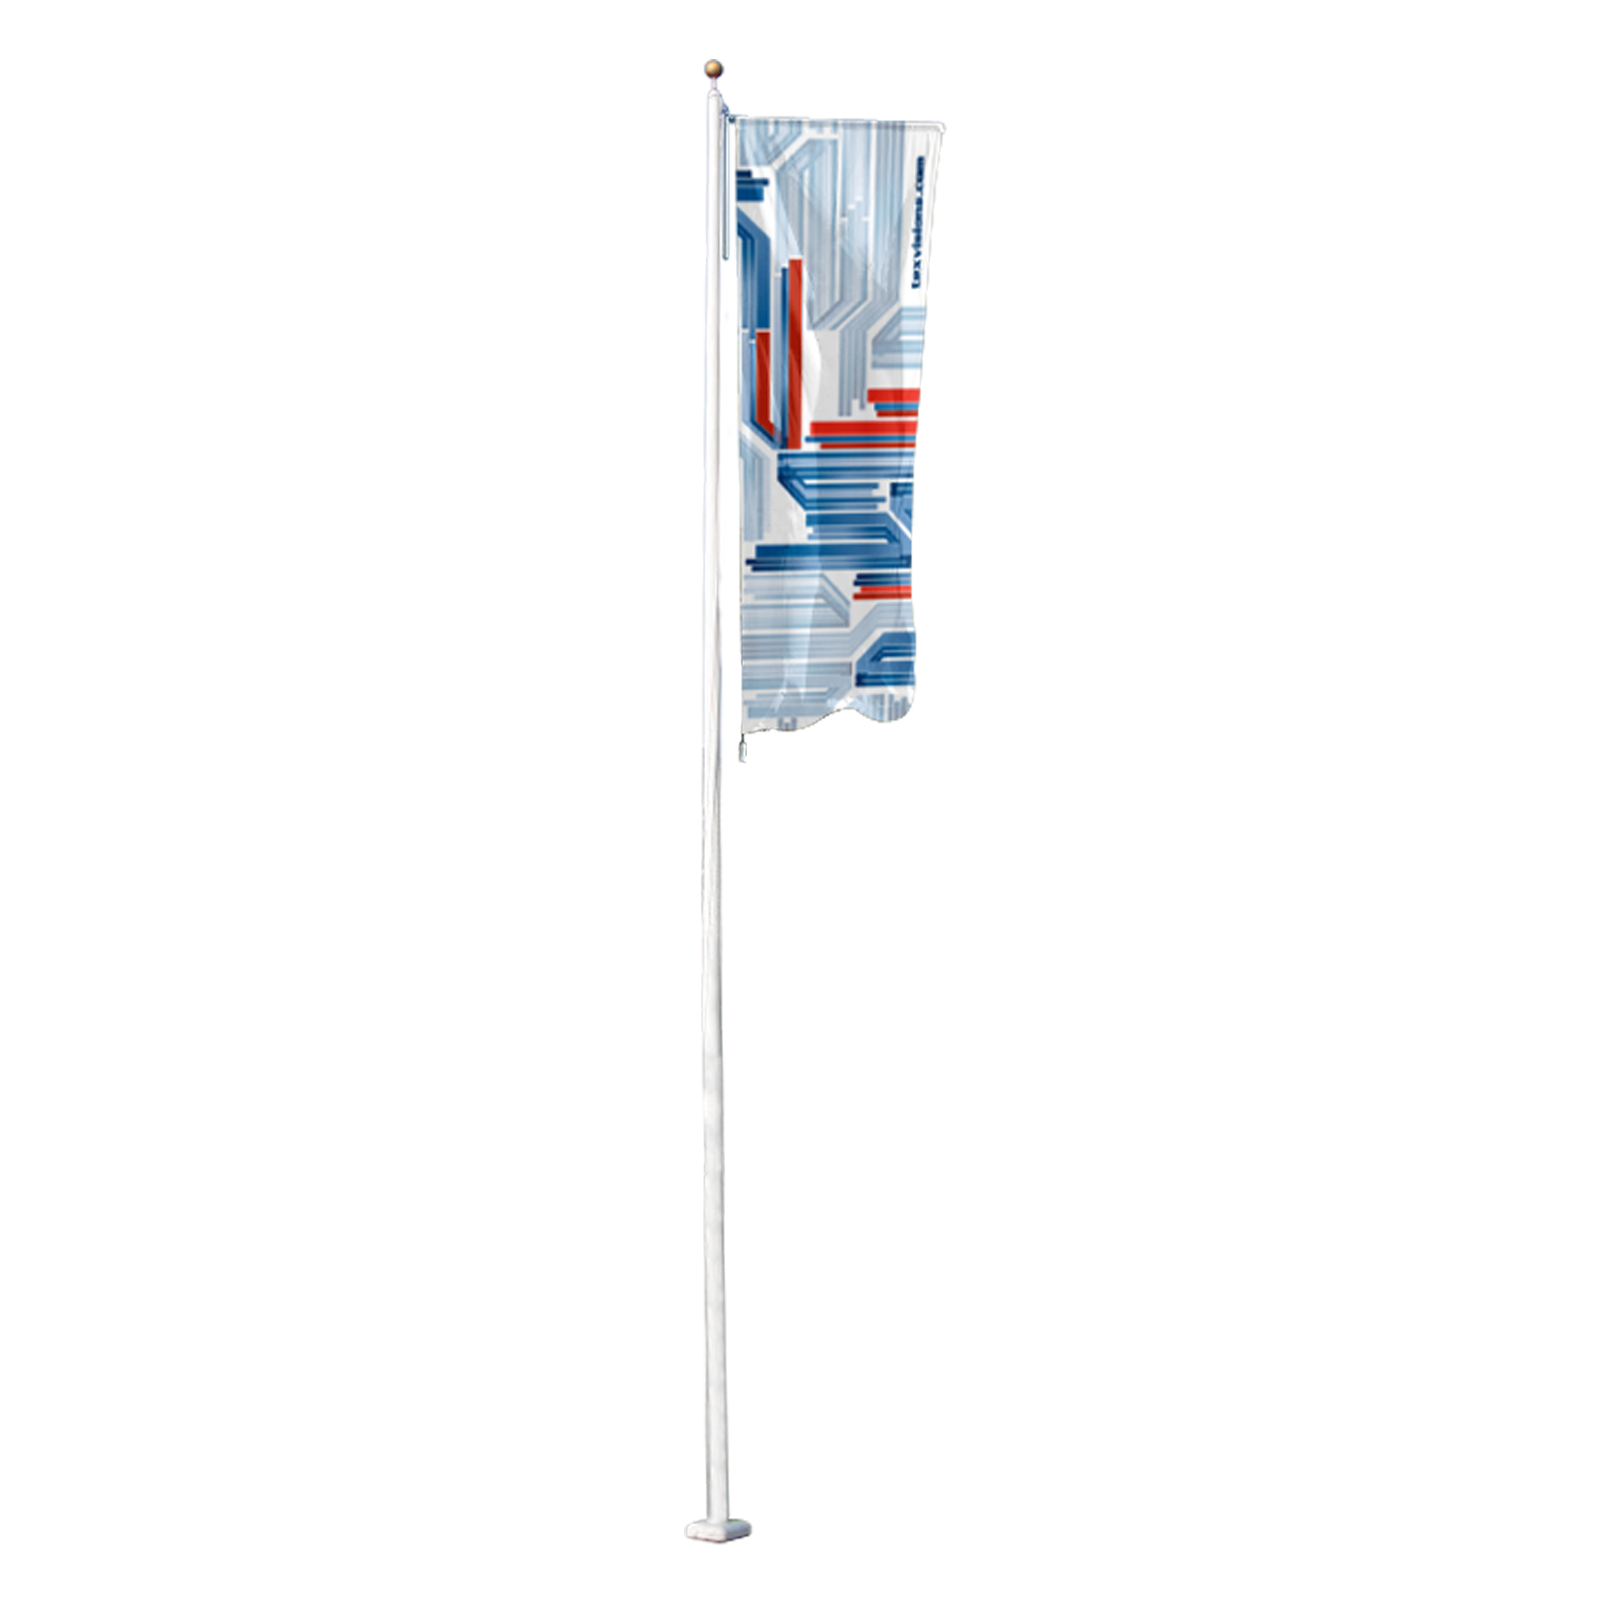 flagpole with banner arm permanent outdoor advertising banner display